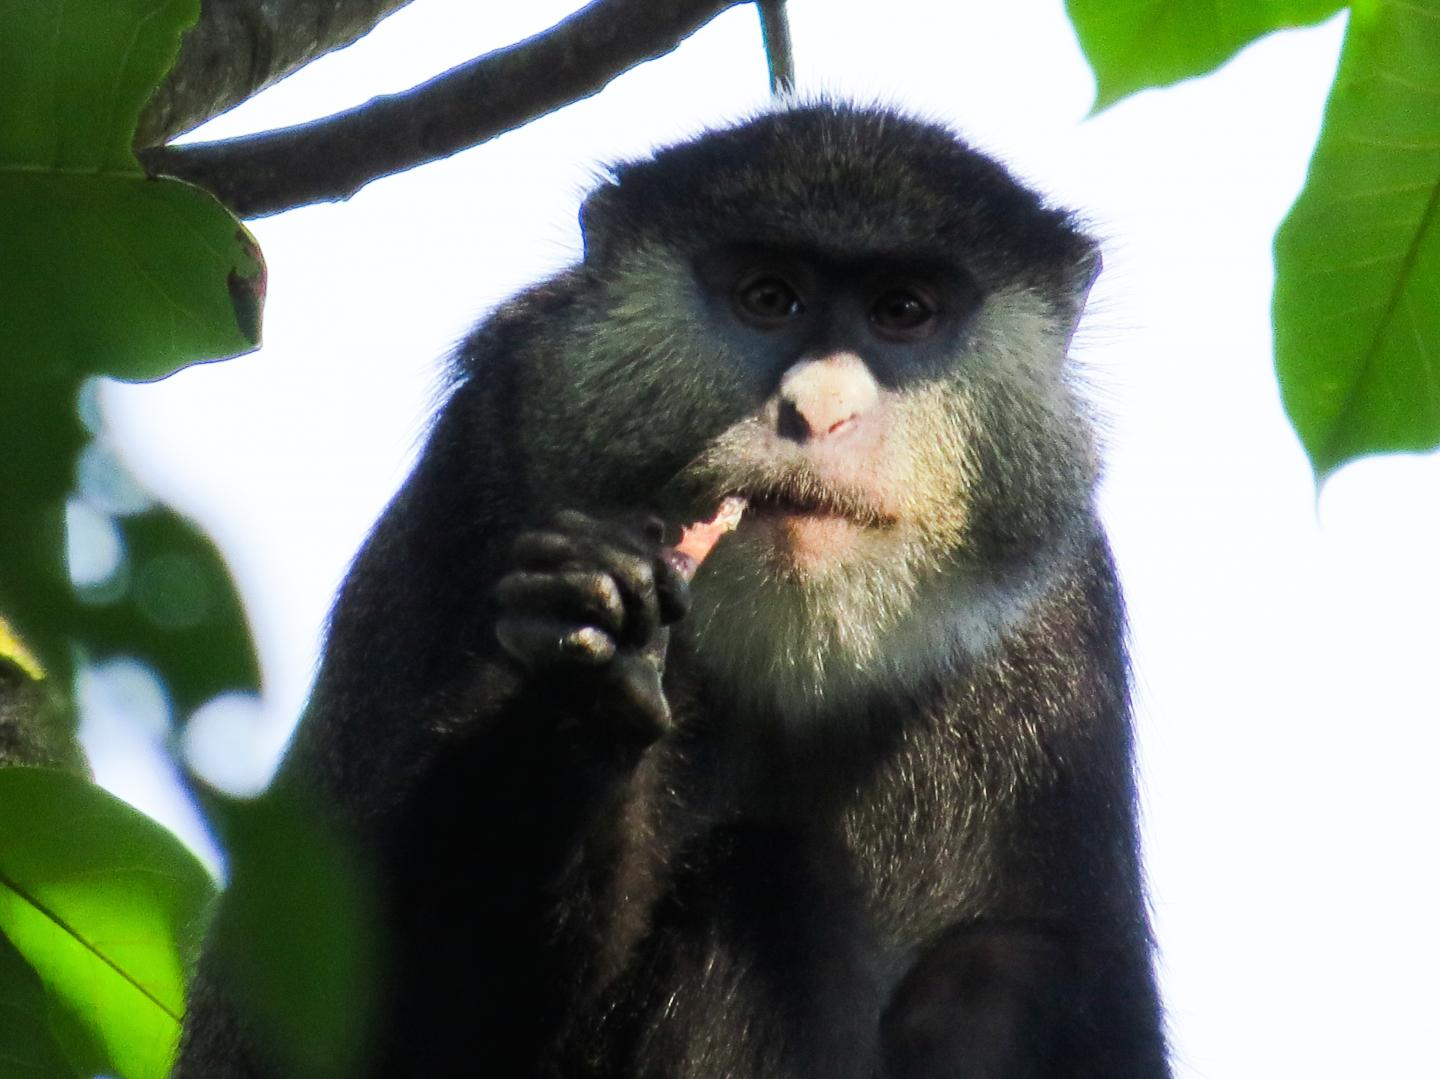 Cercopithecus monkeys